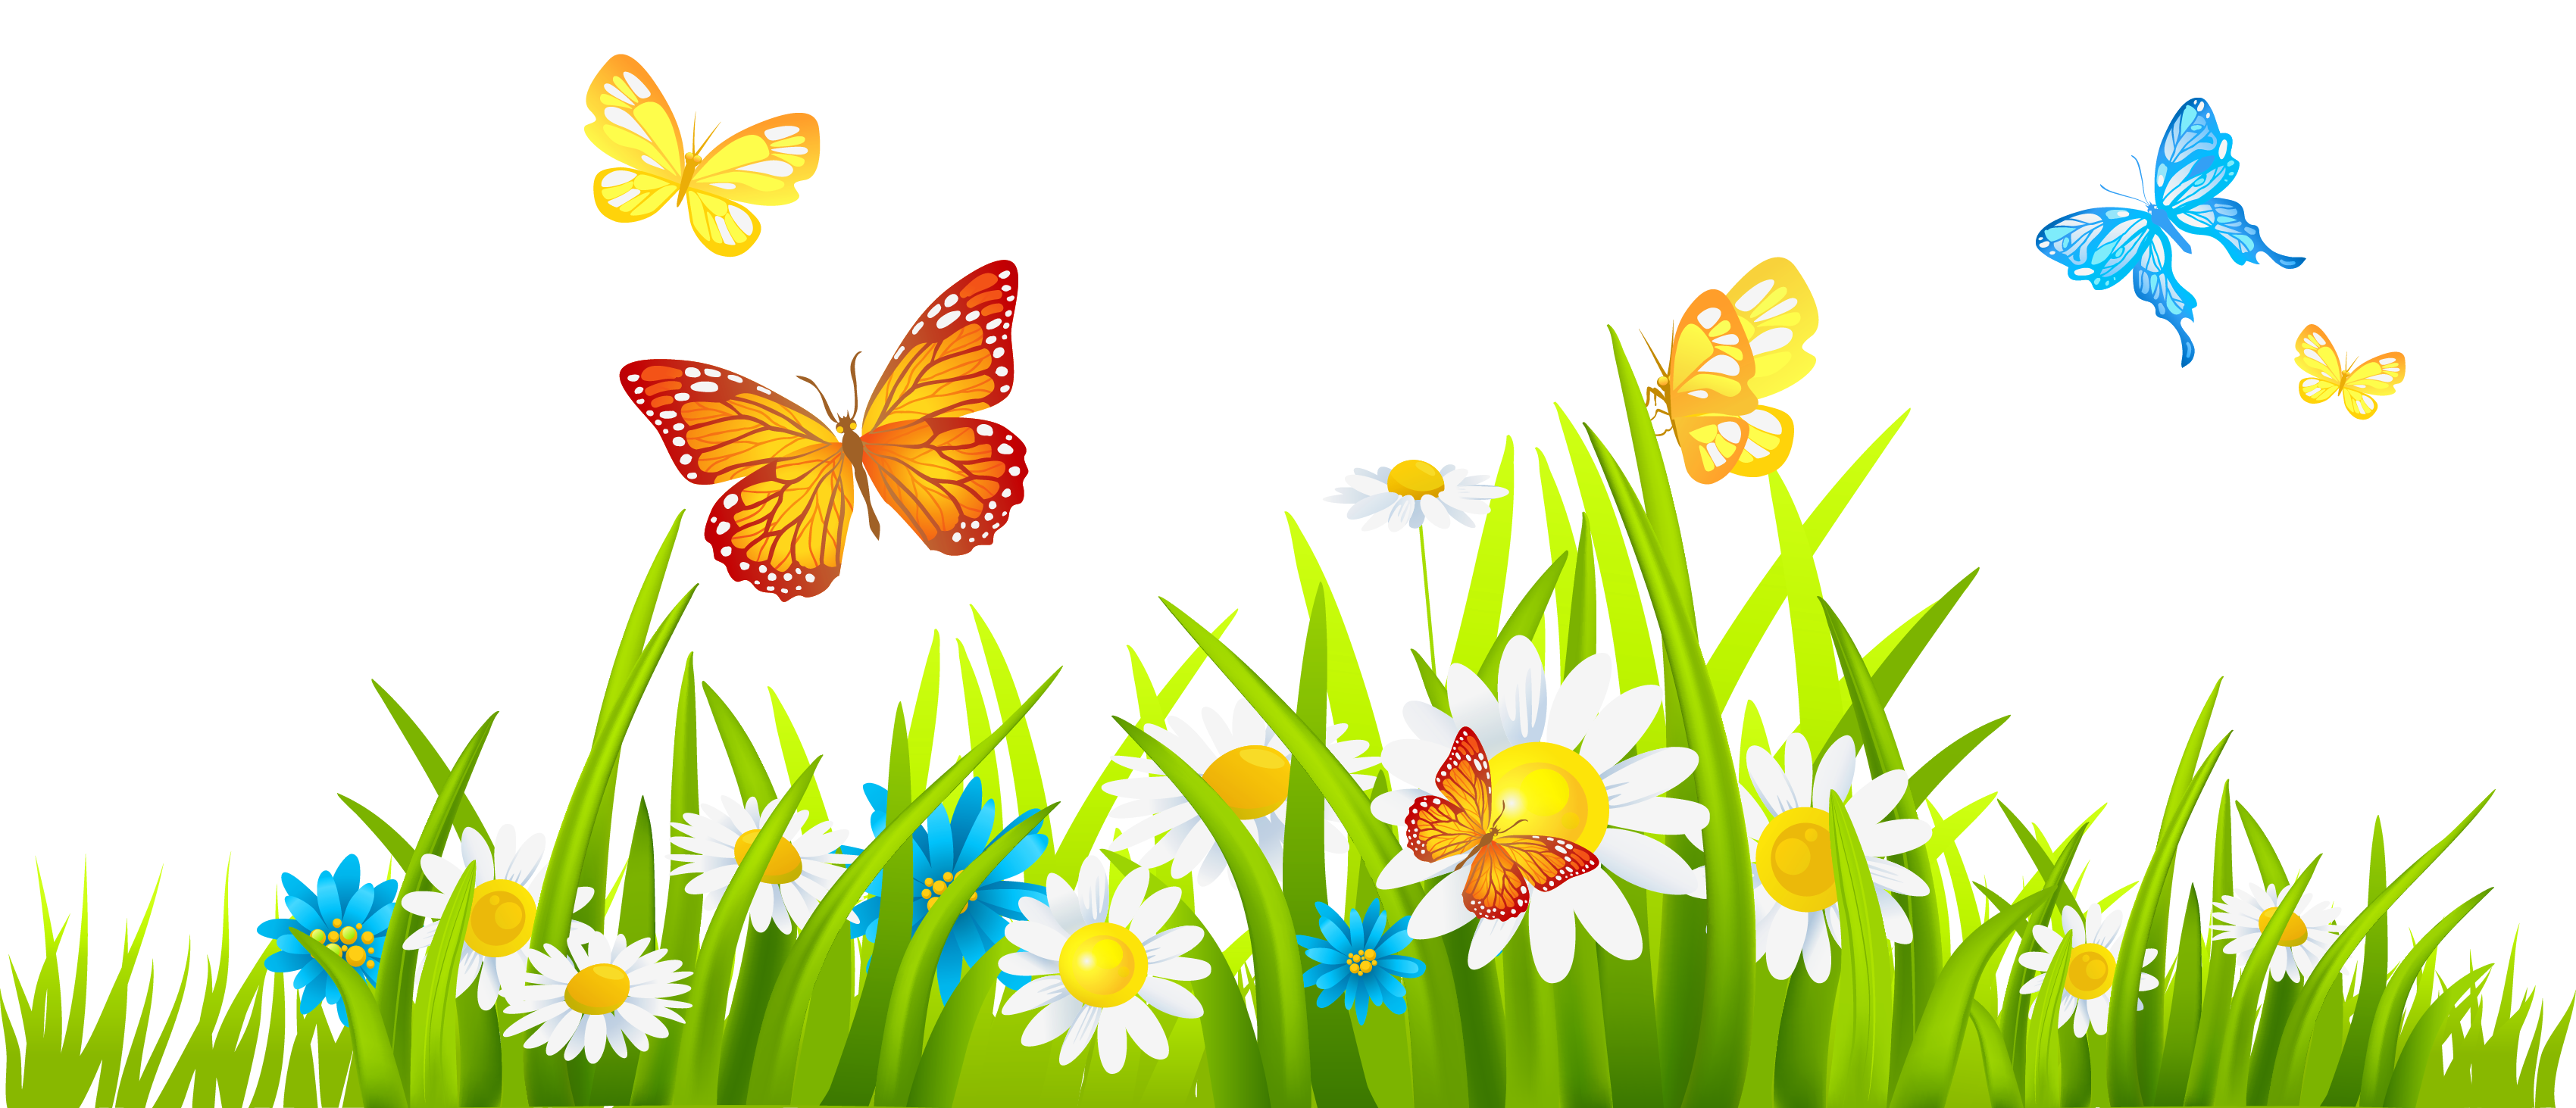 banner royalty free Grass Ground with Flowers and Butterflies PNG Clipart